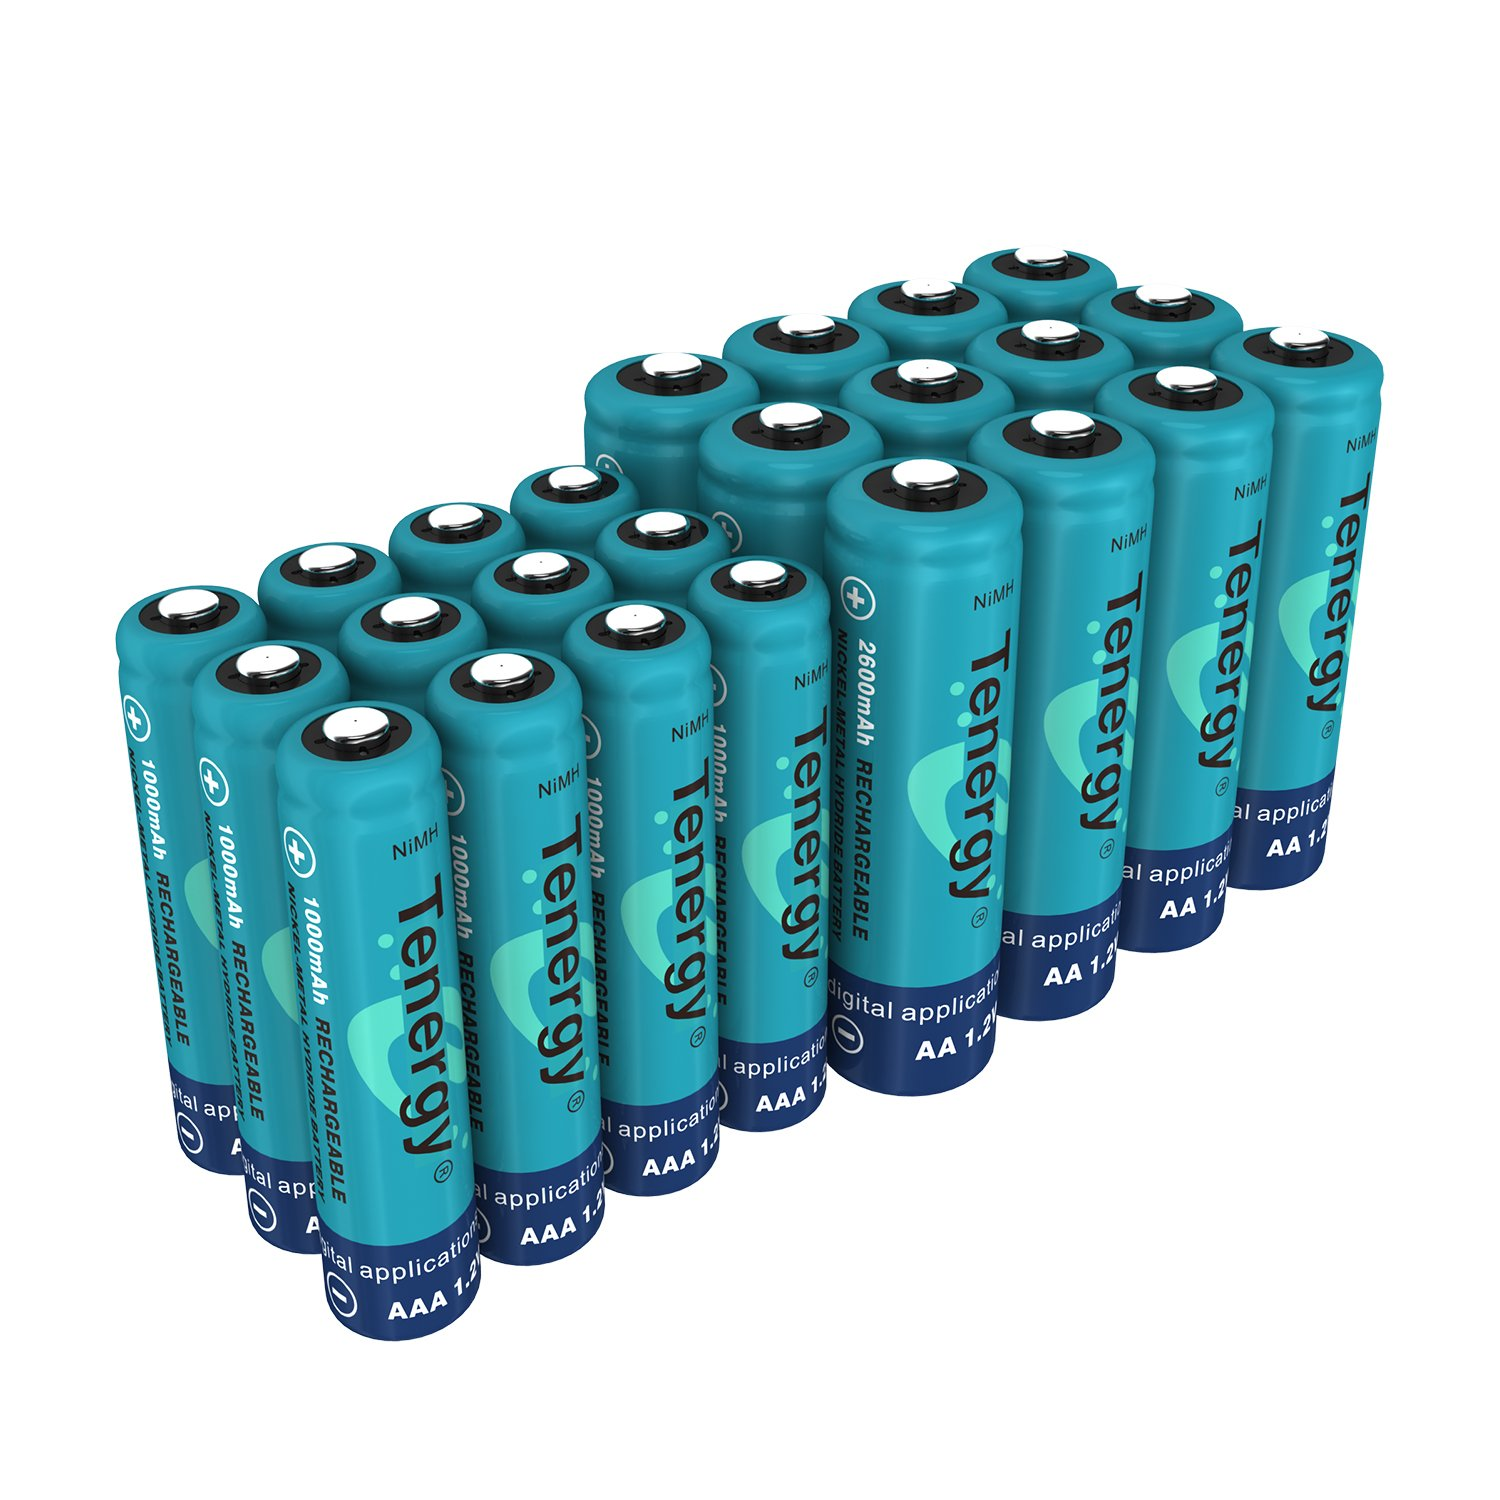 Tenergy High Drain AA and AAA Battery, 1.2V Rechargeable NiMH Batteries Combo, 12-Pack 2600mAh AA Cells and 12-Pack 1000mAH AAA Cell Batteries by Tenergy